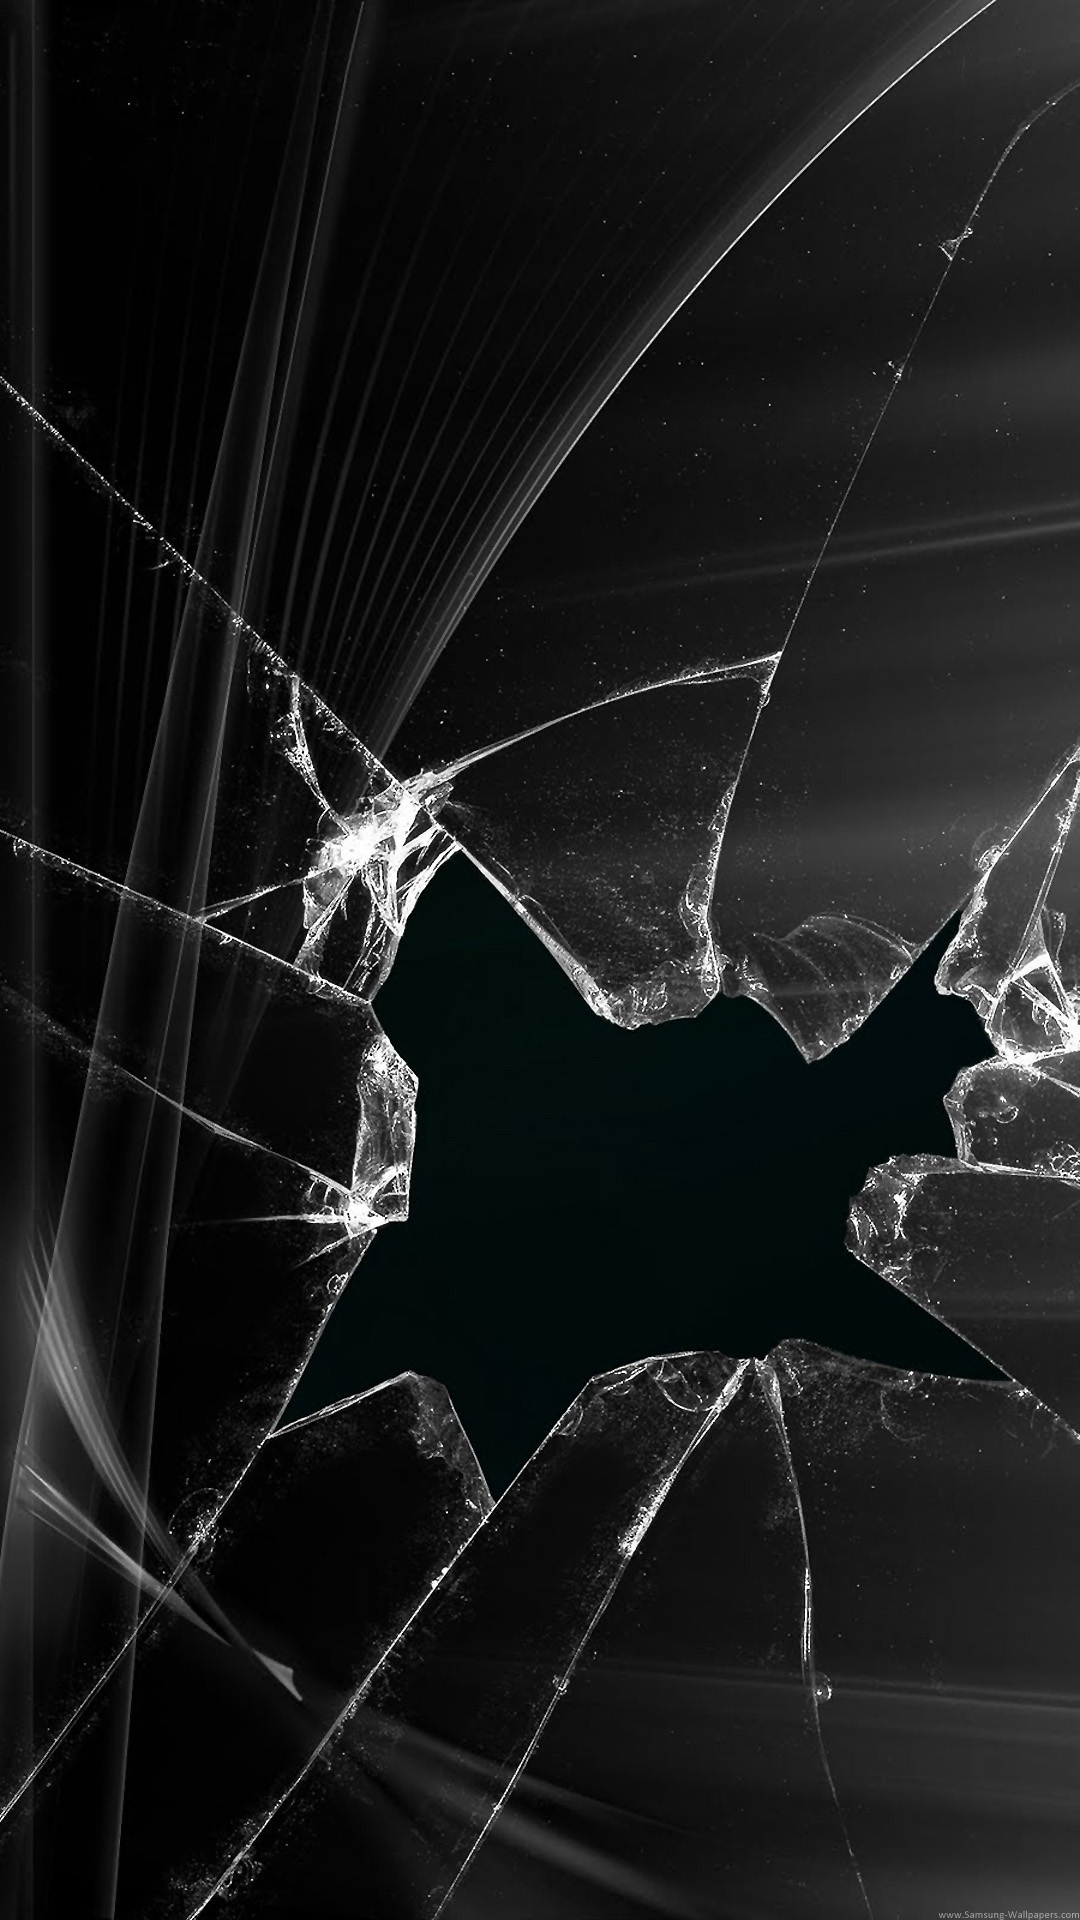 broken-screen-black-abstract-picture-cracked-screen-1080×1920-wallpaper-wpc9203240